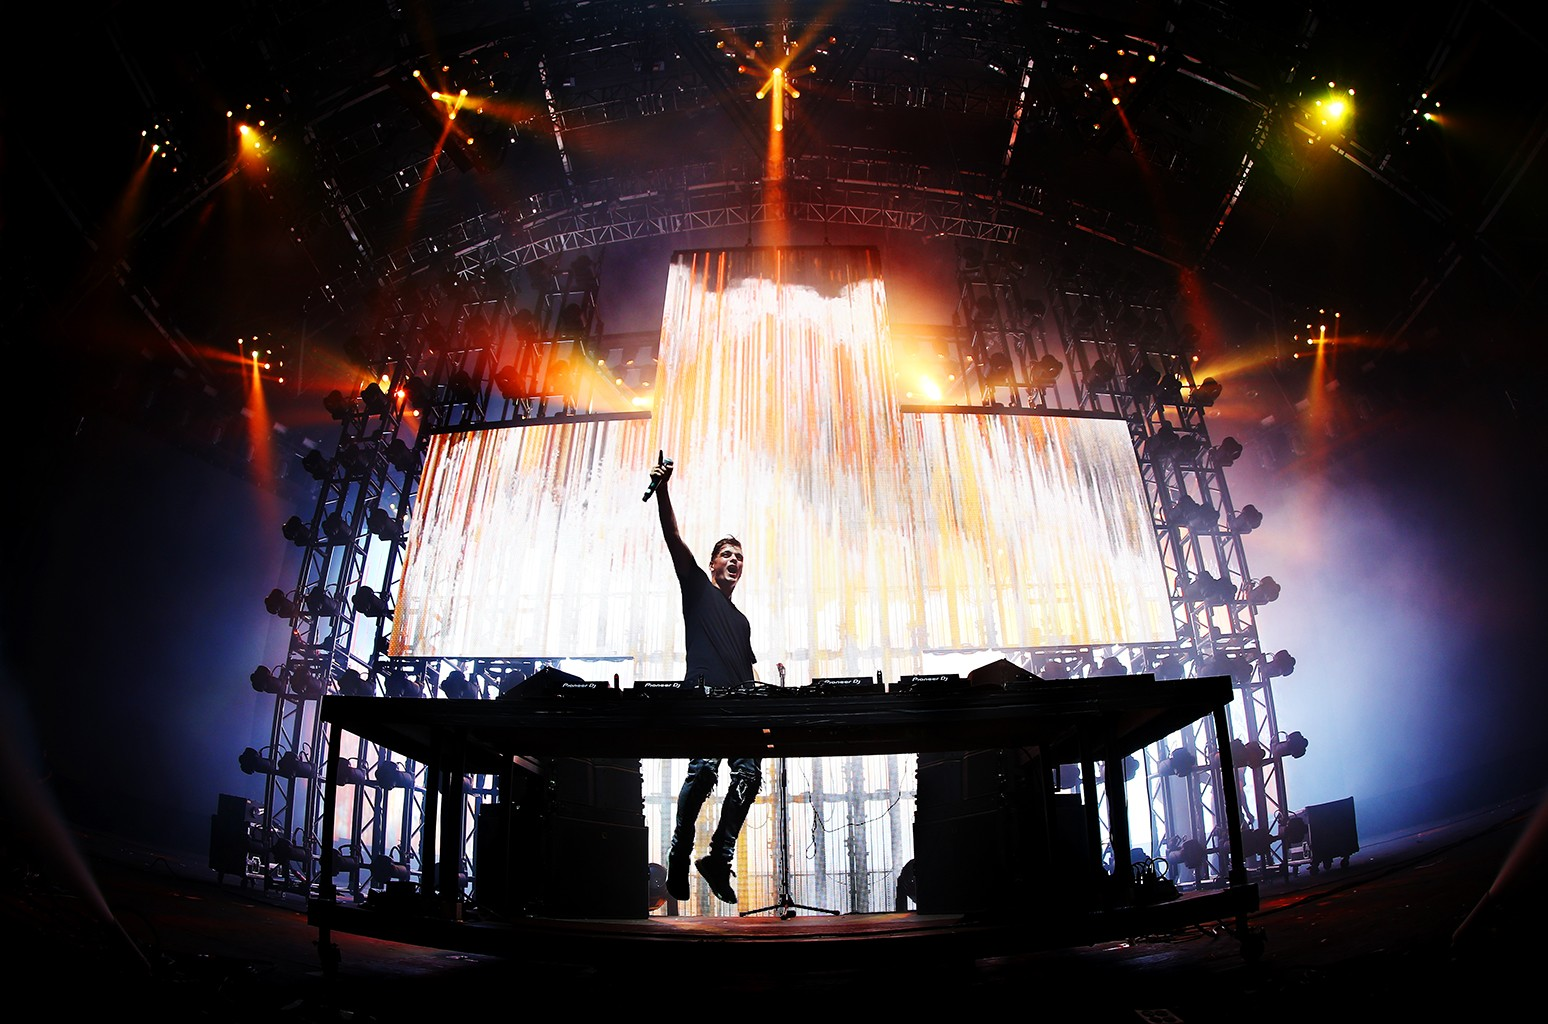 DJ Martin Garrix performs on the Sahara Stage during day 2 of the Coachella Valley Music And Arts Festival (Weekend 1) at the Empire Polo Club on April 14, 2017 in Indio, Calif.